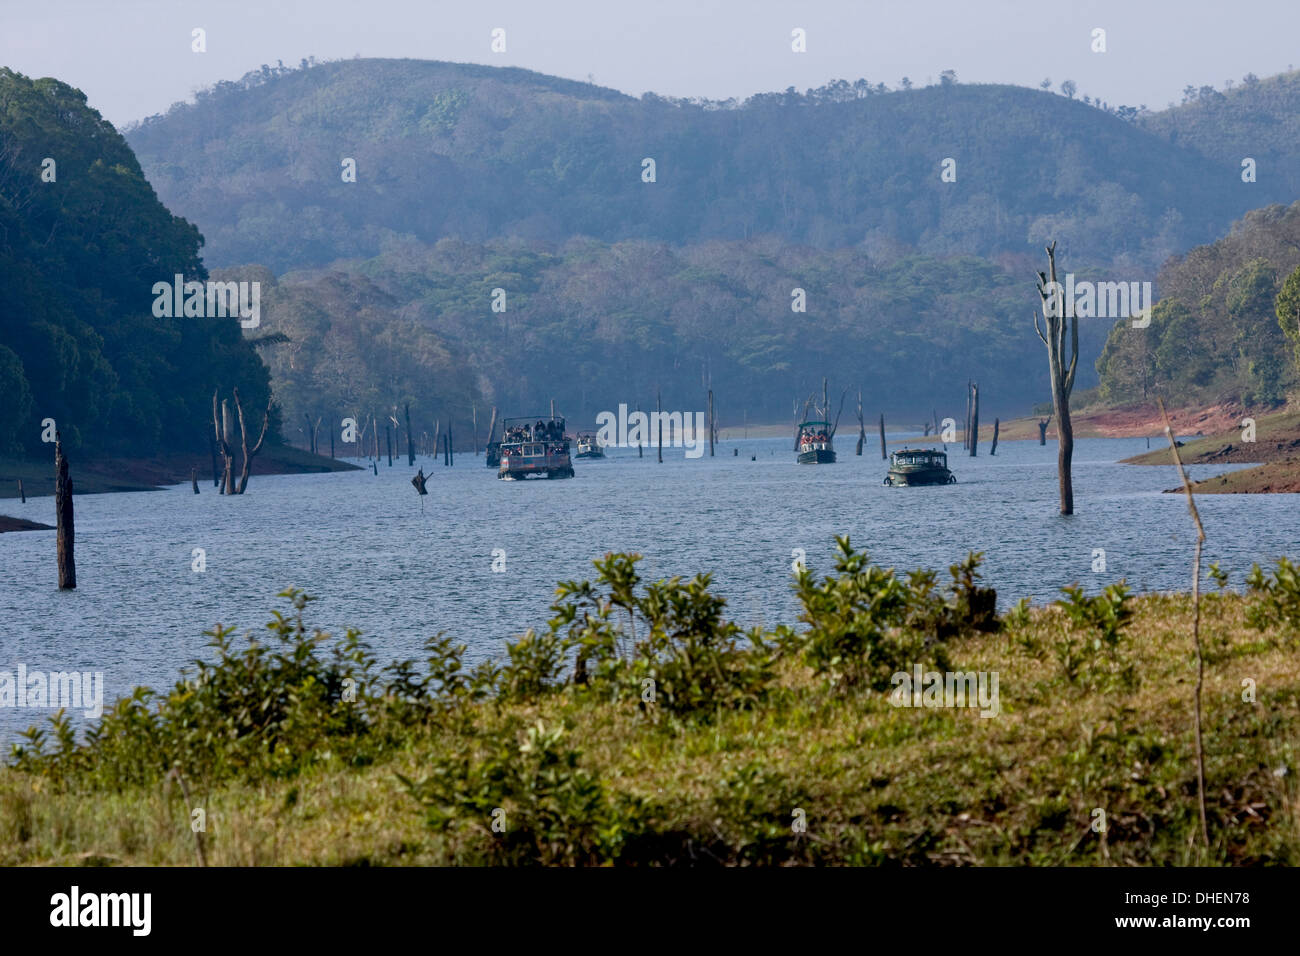 Boating, Periyar Tiger Reserve, Thekkady, Kerala, India, Asia - Stock Image